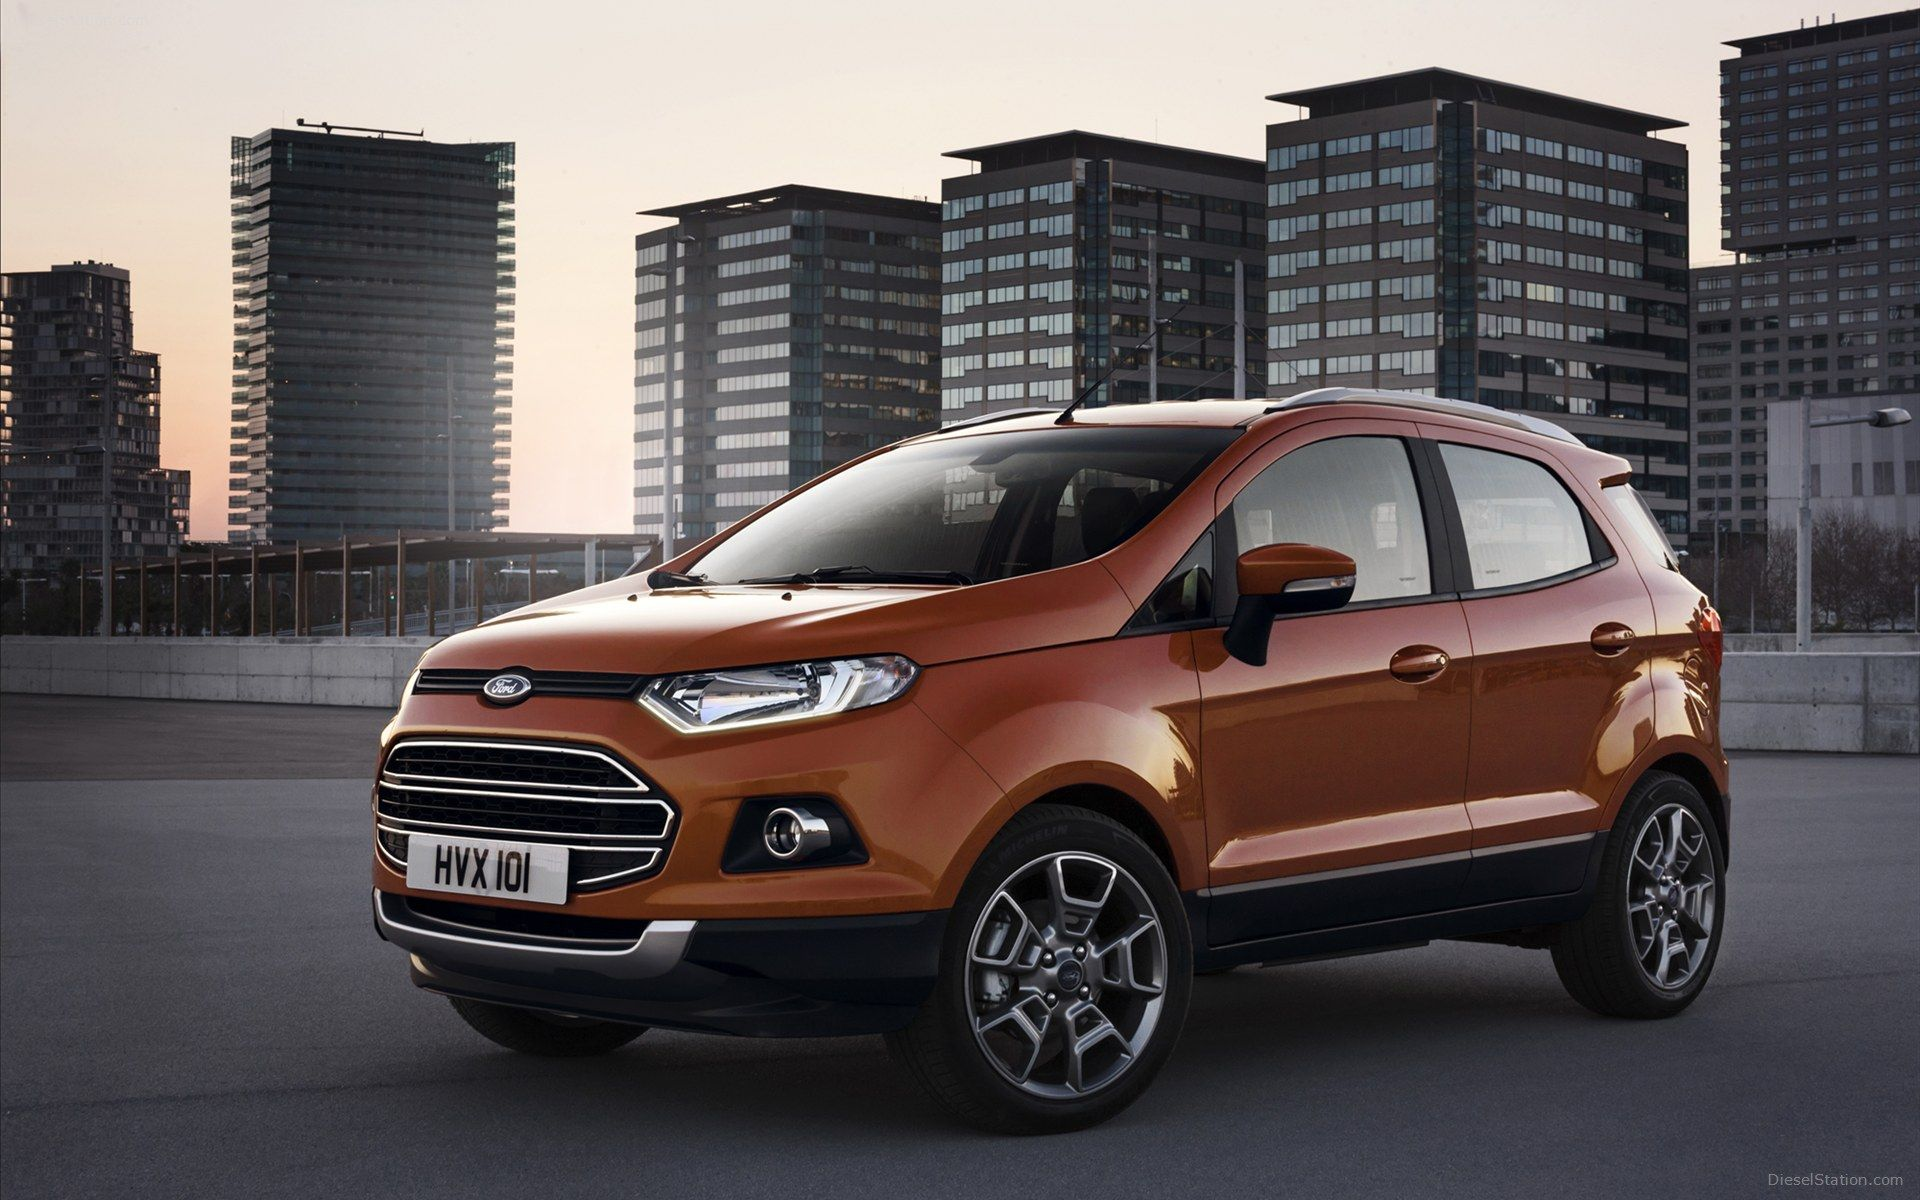 suvs Home > Ford > Ford Ecosport SUV 2014 Ford